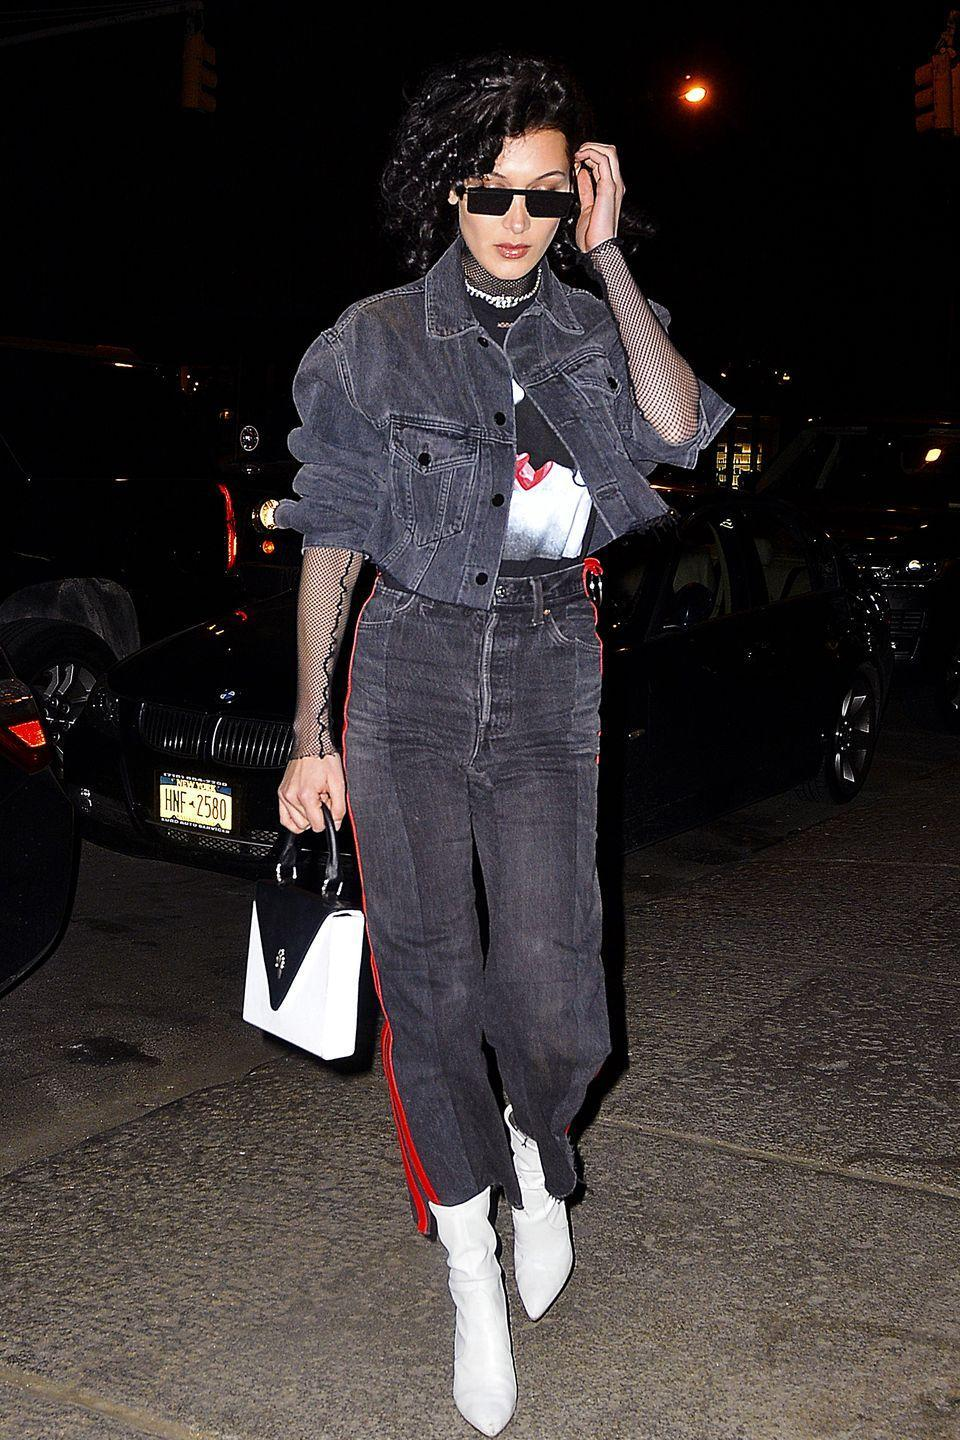 <p>In a sheer fishnet top under a graphic tee and grey Alexander Wang denim jacket with red leather-lined Vetements jeans, Stuart Weitzman boots, a Chrome Hearts bag and black sunglasses while out in New York City. </p>